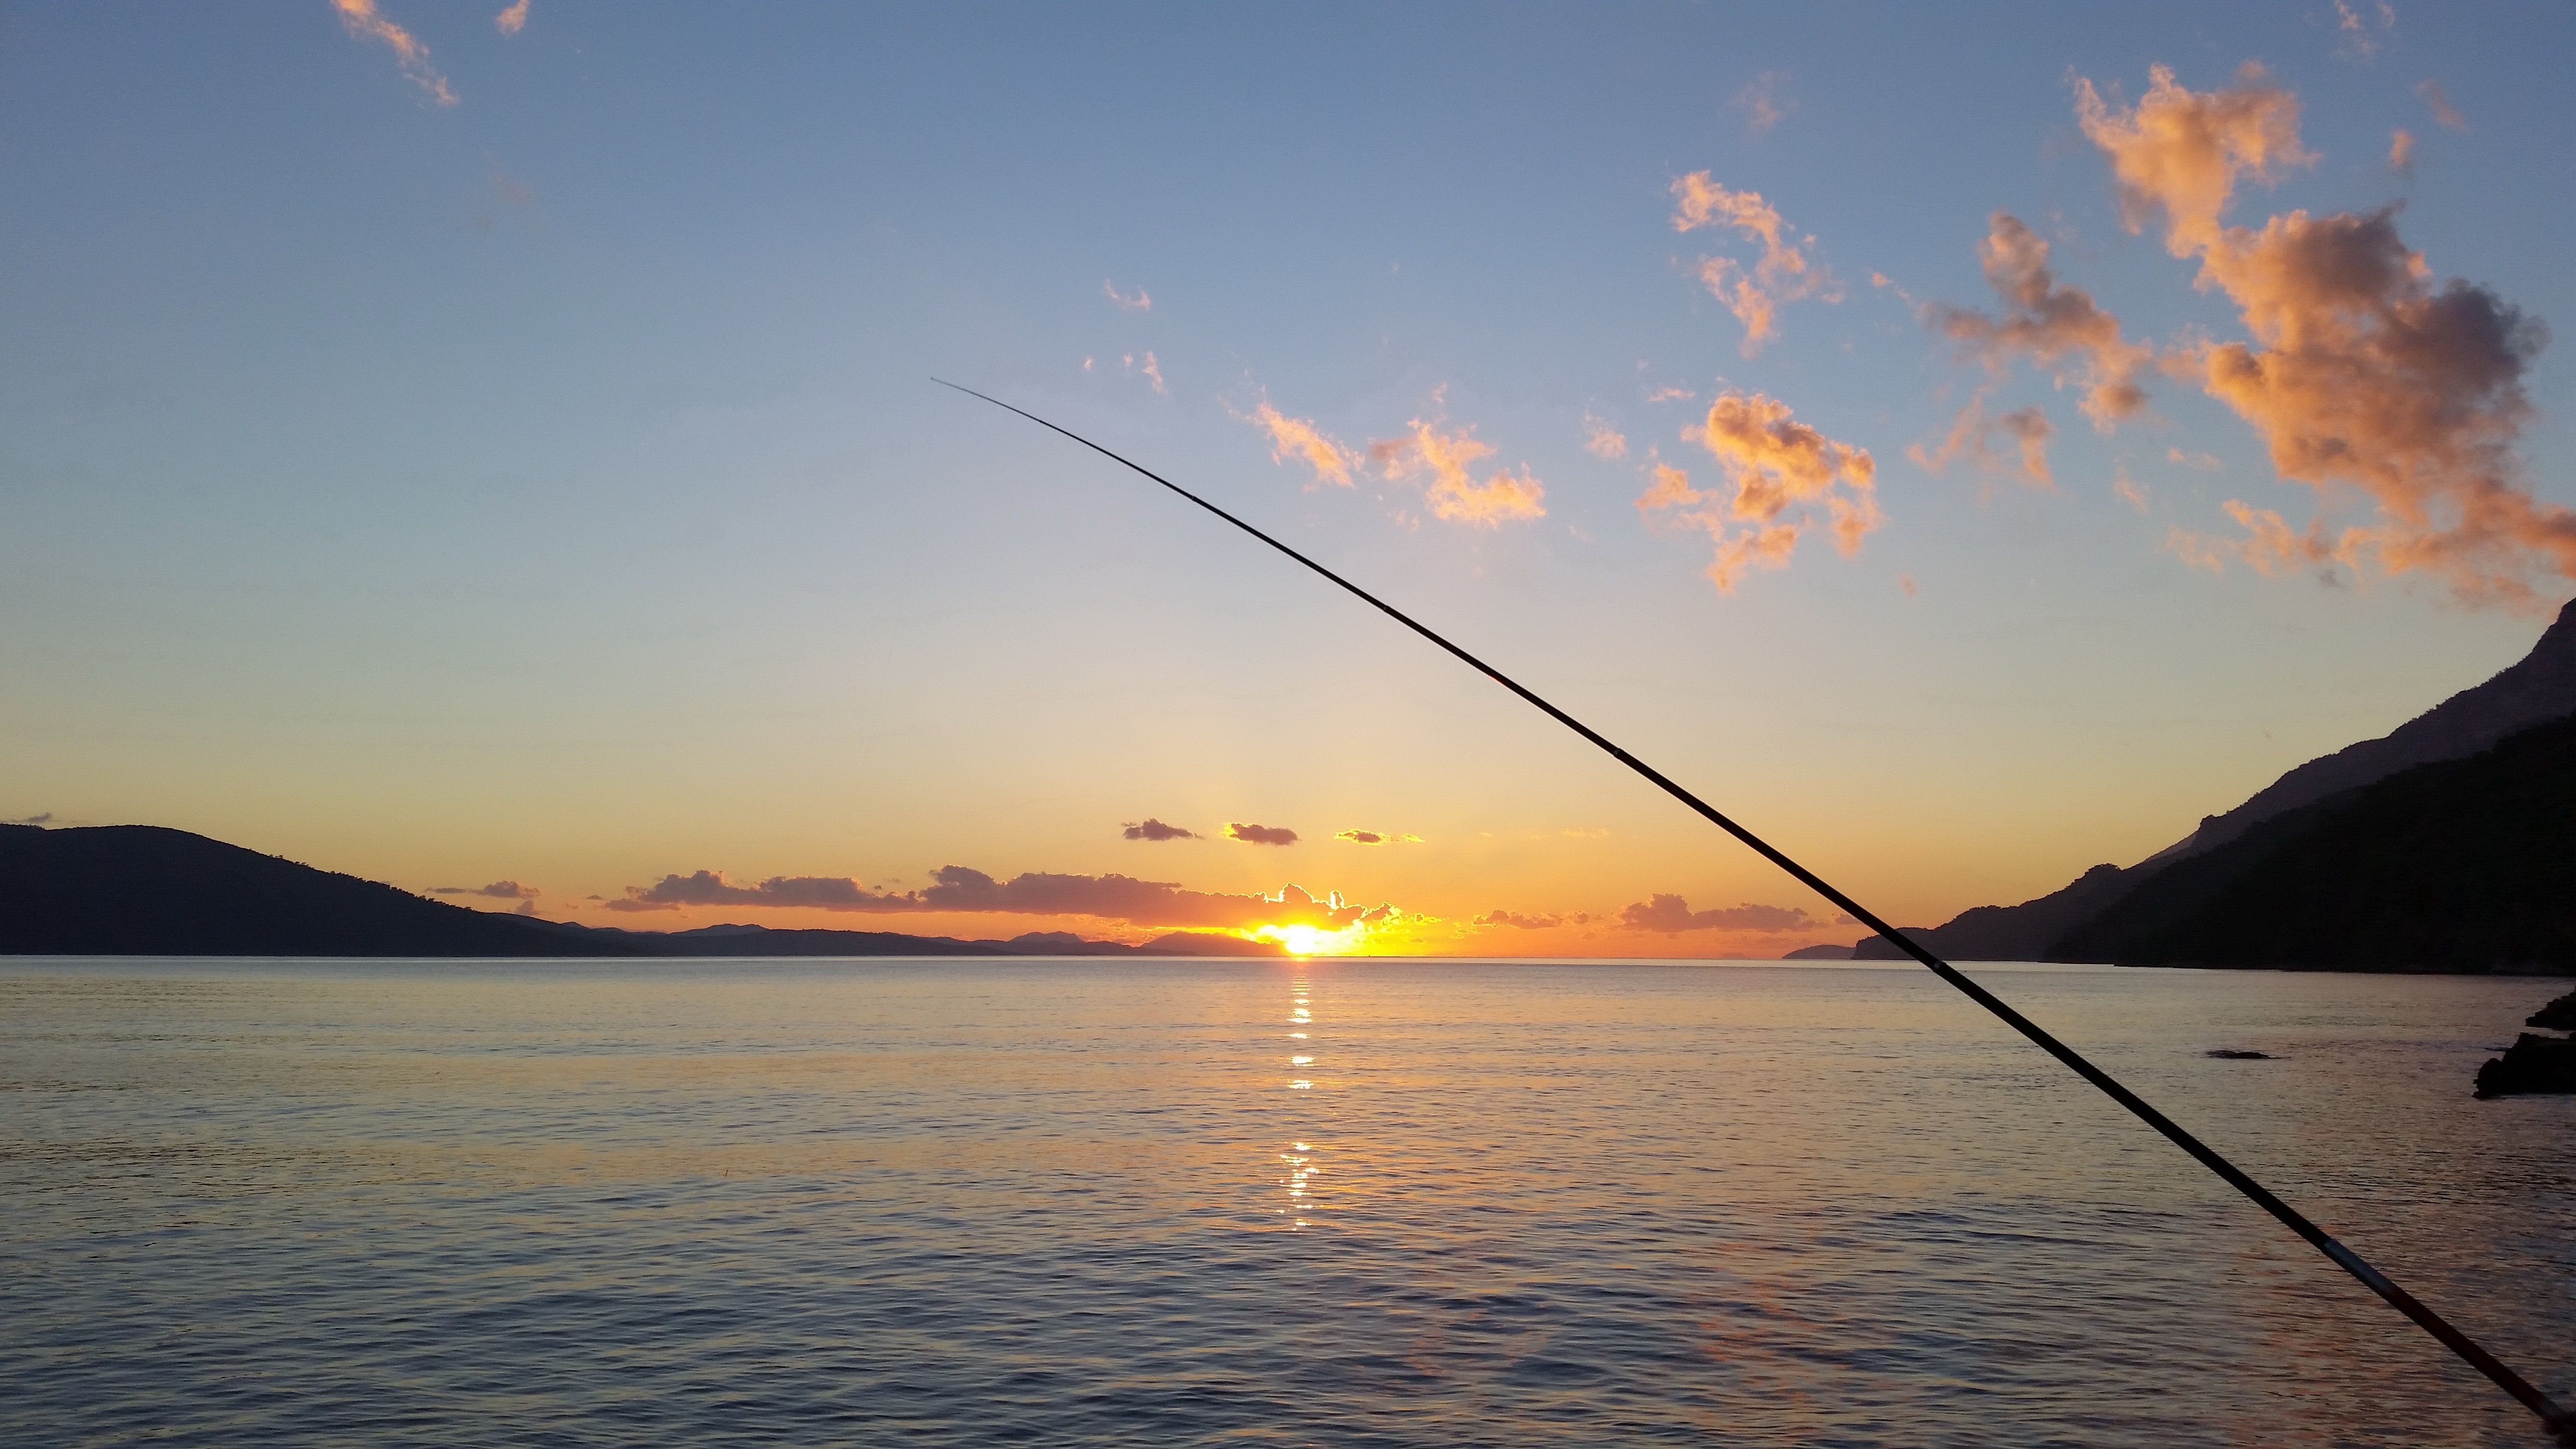 Fishing Cures the Soul